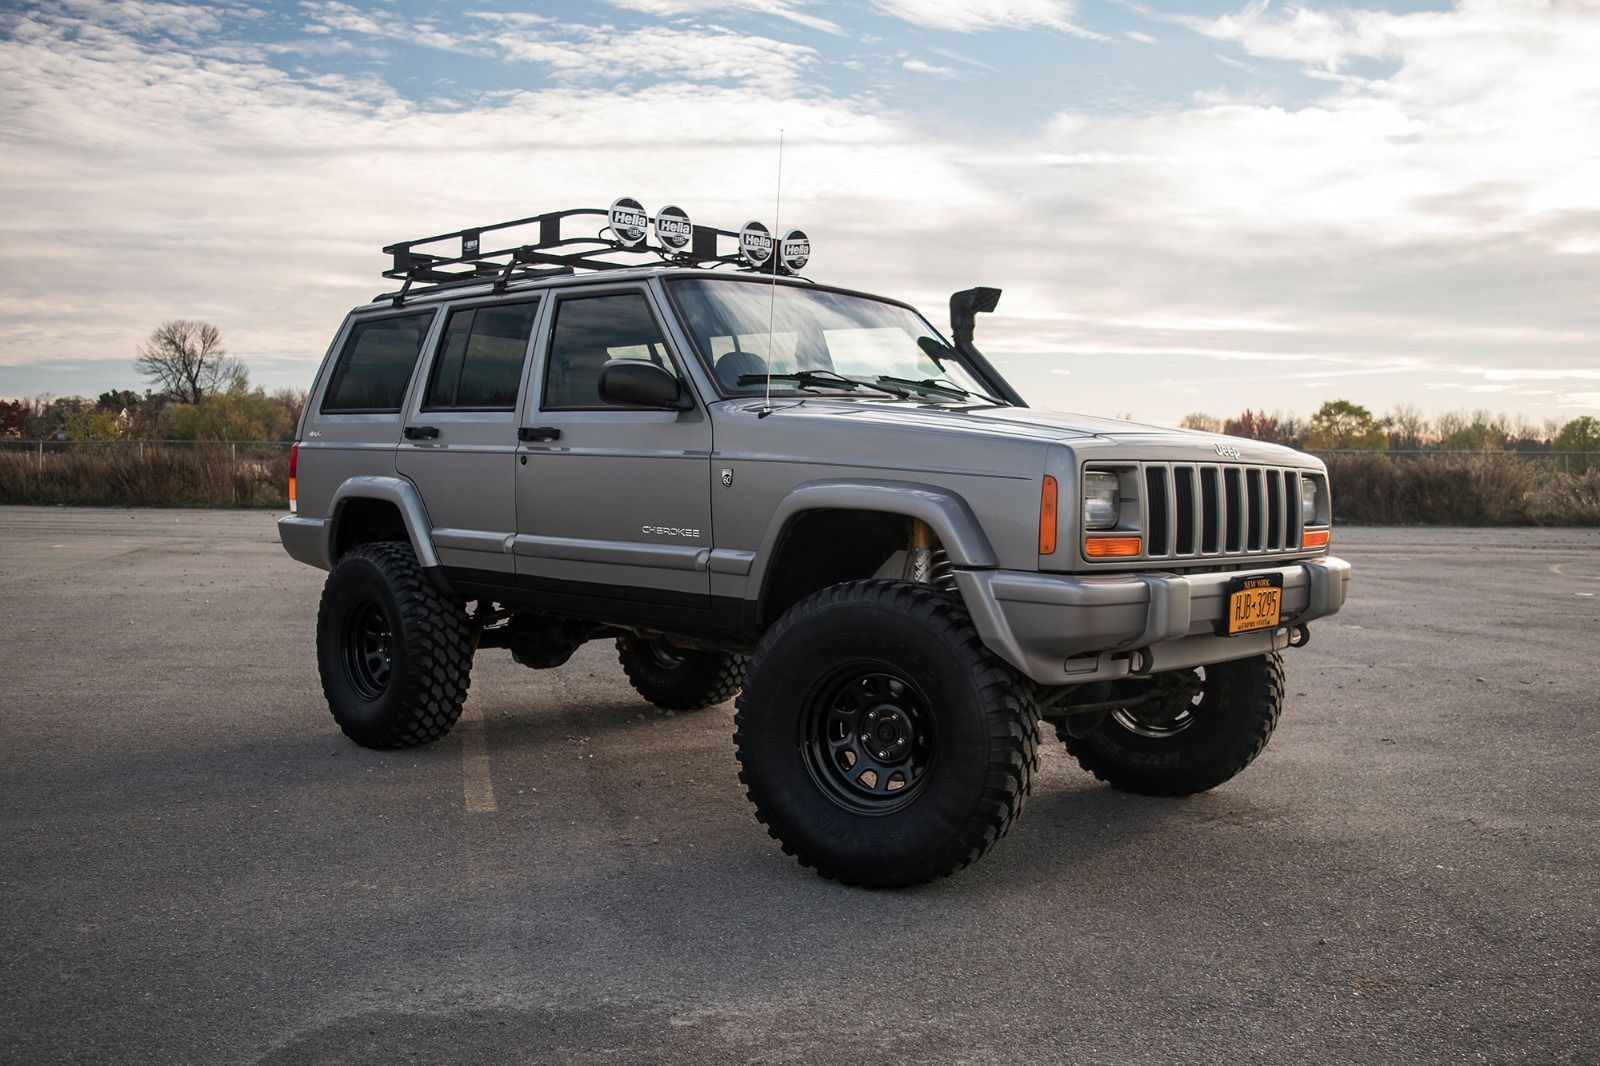 5 5 Re 33x12 5r15 Xj Lift Tire Setup Thread Page 63 Jeep Cherokee Forum Jeep Xj Jeep Xj Mods Jeep